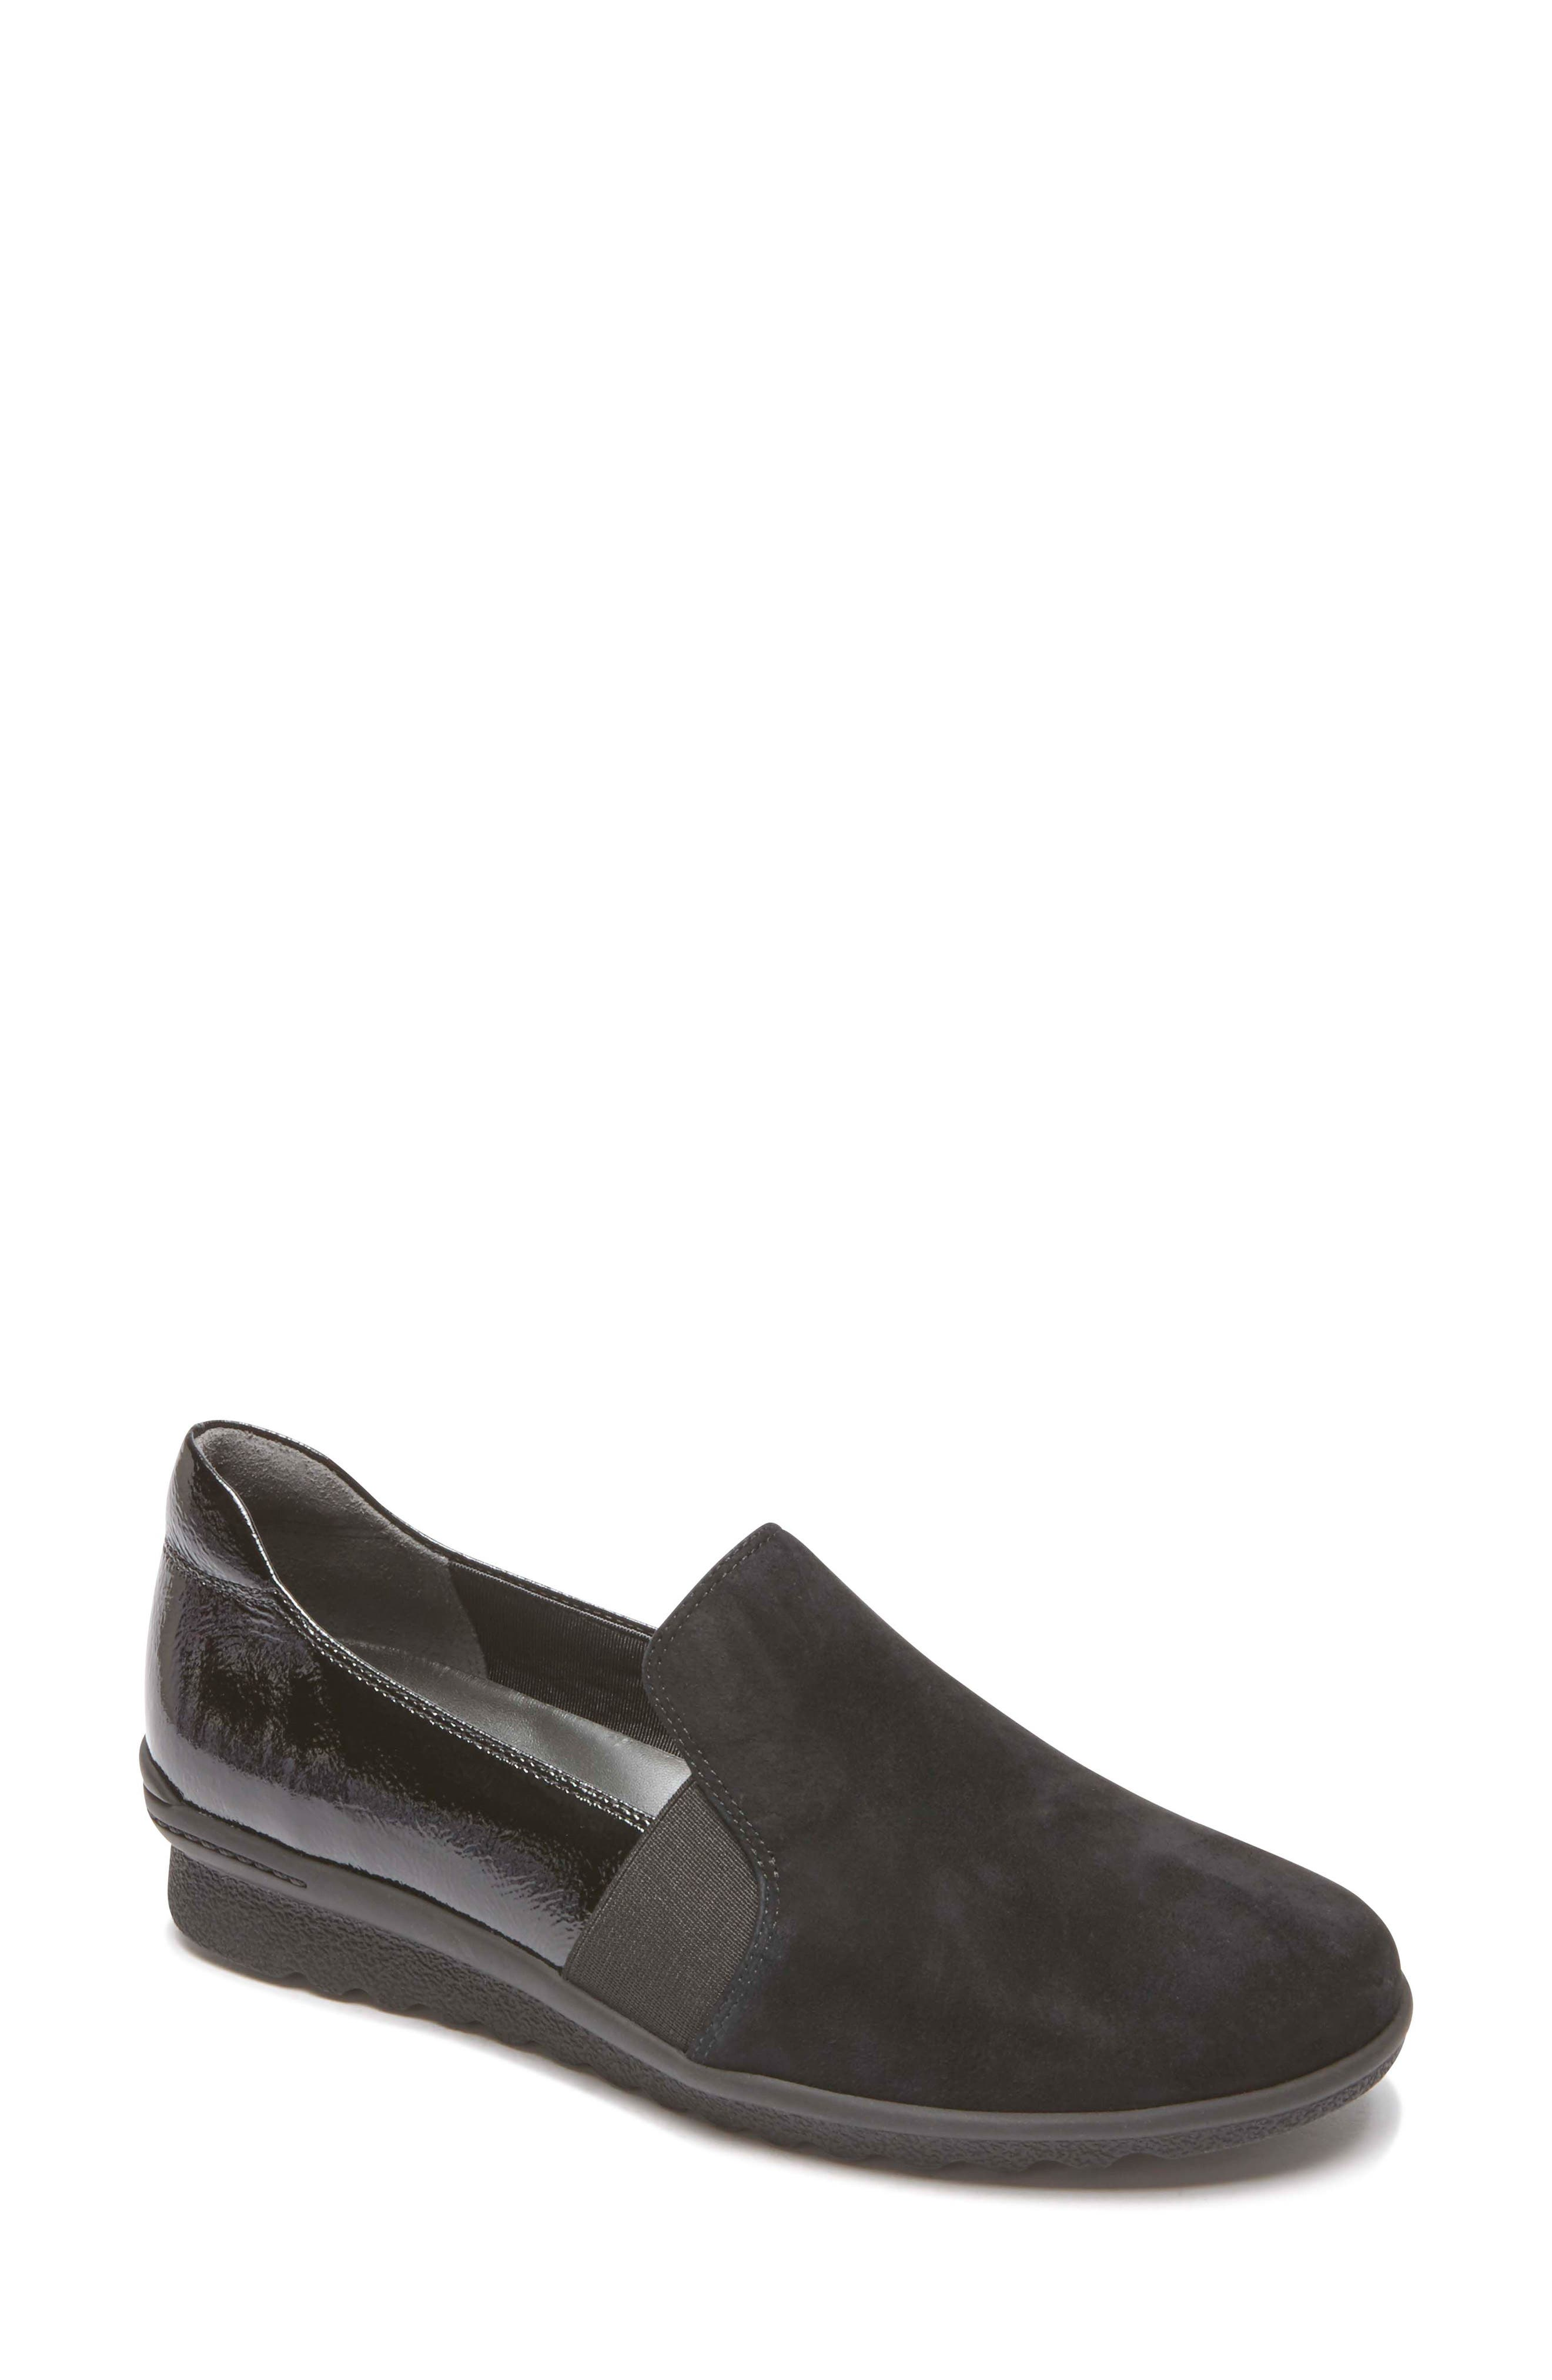 Chenole Loafer,                             Main thumbnail 1, color,                             BLACK SUEDE